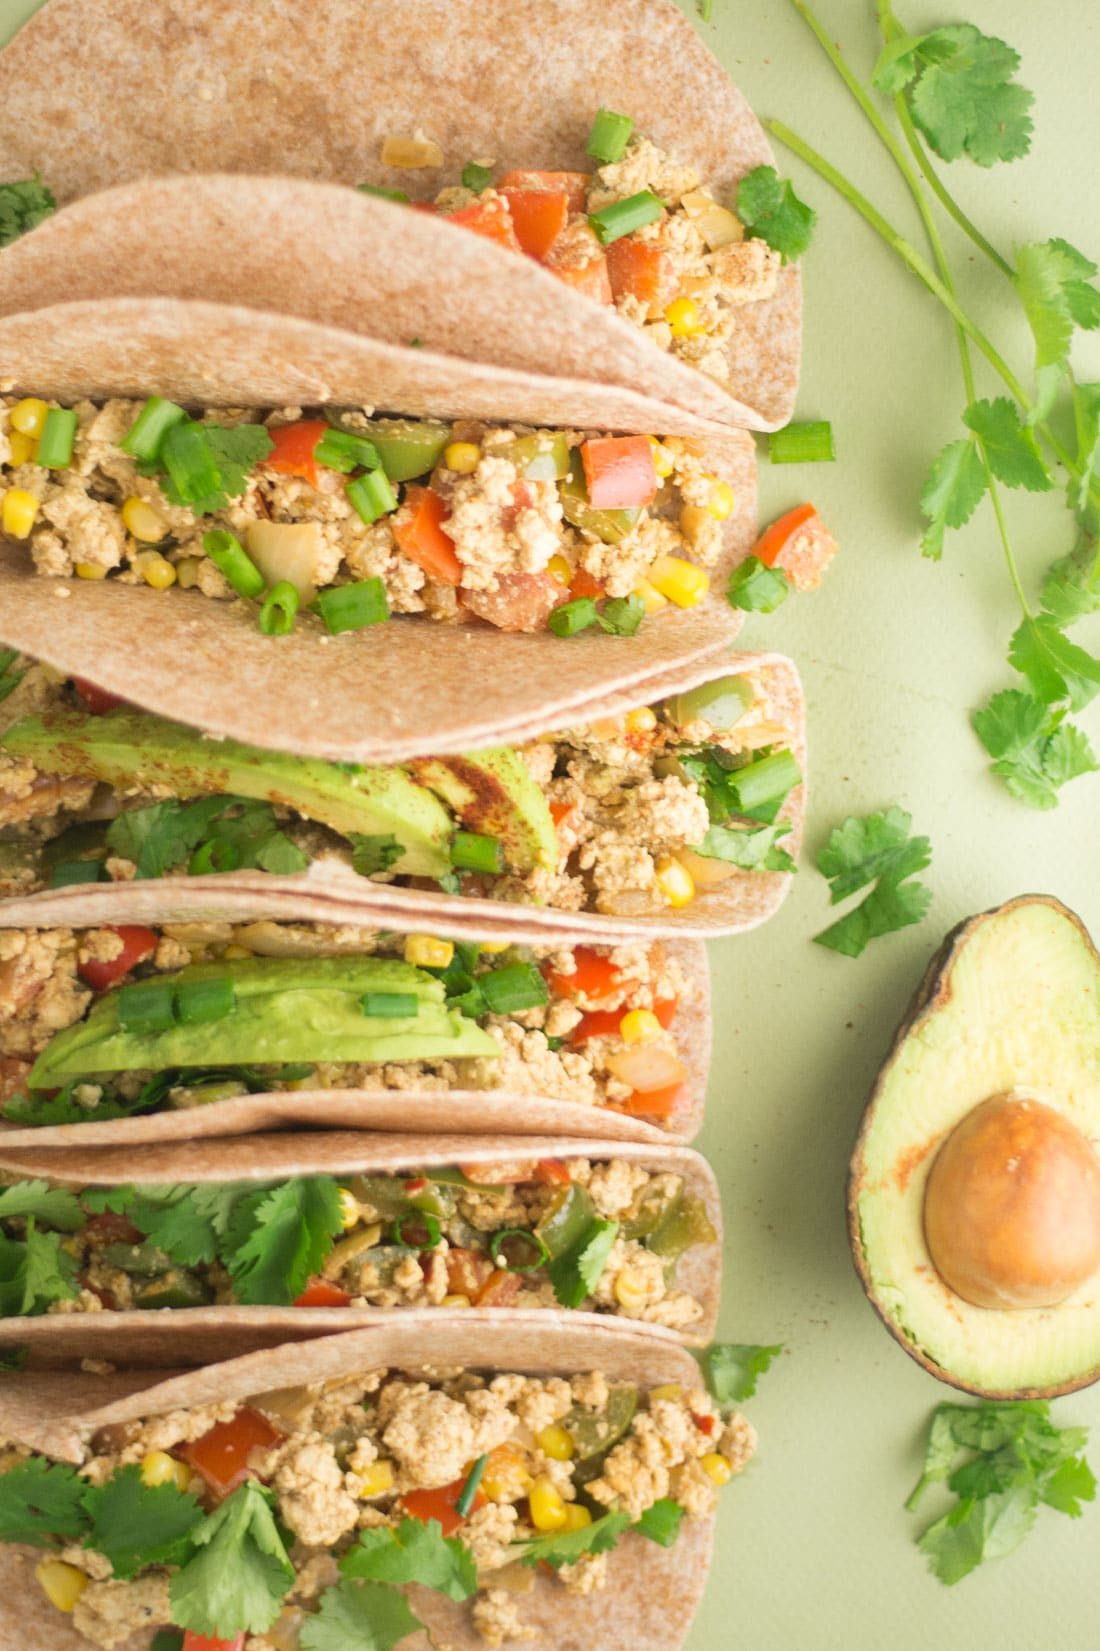 Tofu Scramble Tacos -- These tofu scramble tacos are so easy to make and are packed with veggies and protein. Upgrade you breakfast routine or try these mexican inspired vegan tacos for lunch or dinner. They are delicious any time of the day. | mindfulavocado